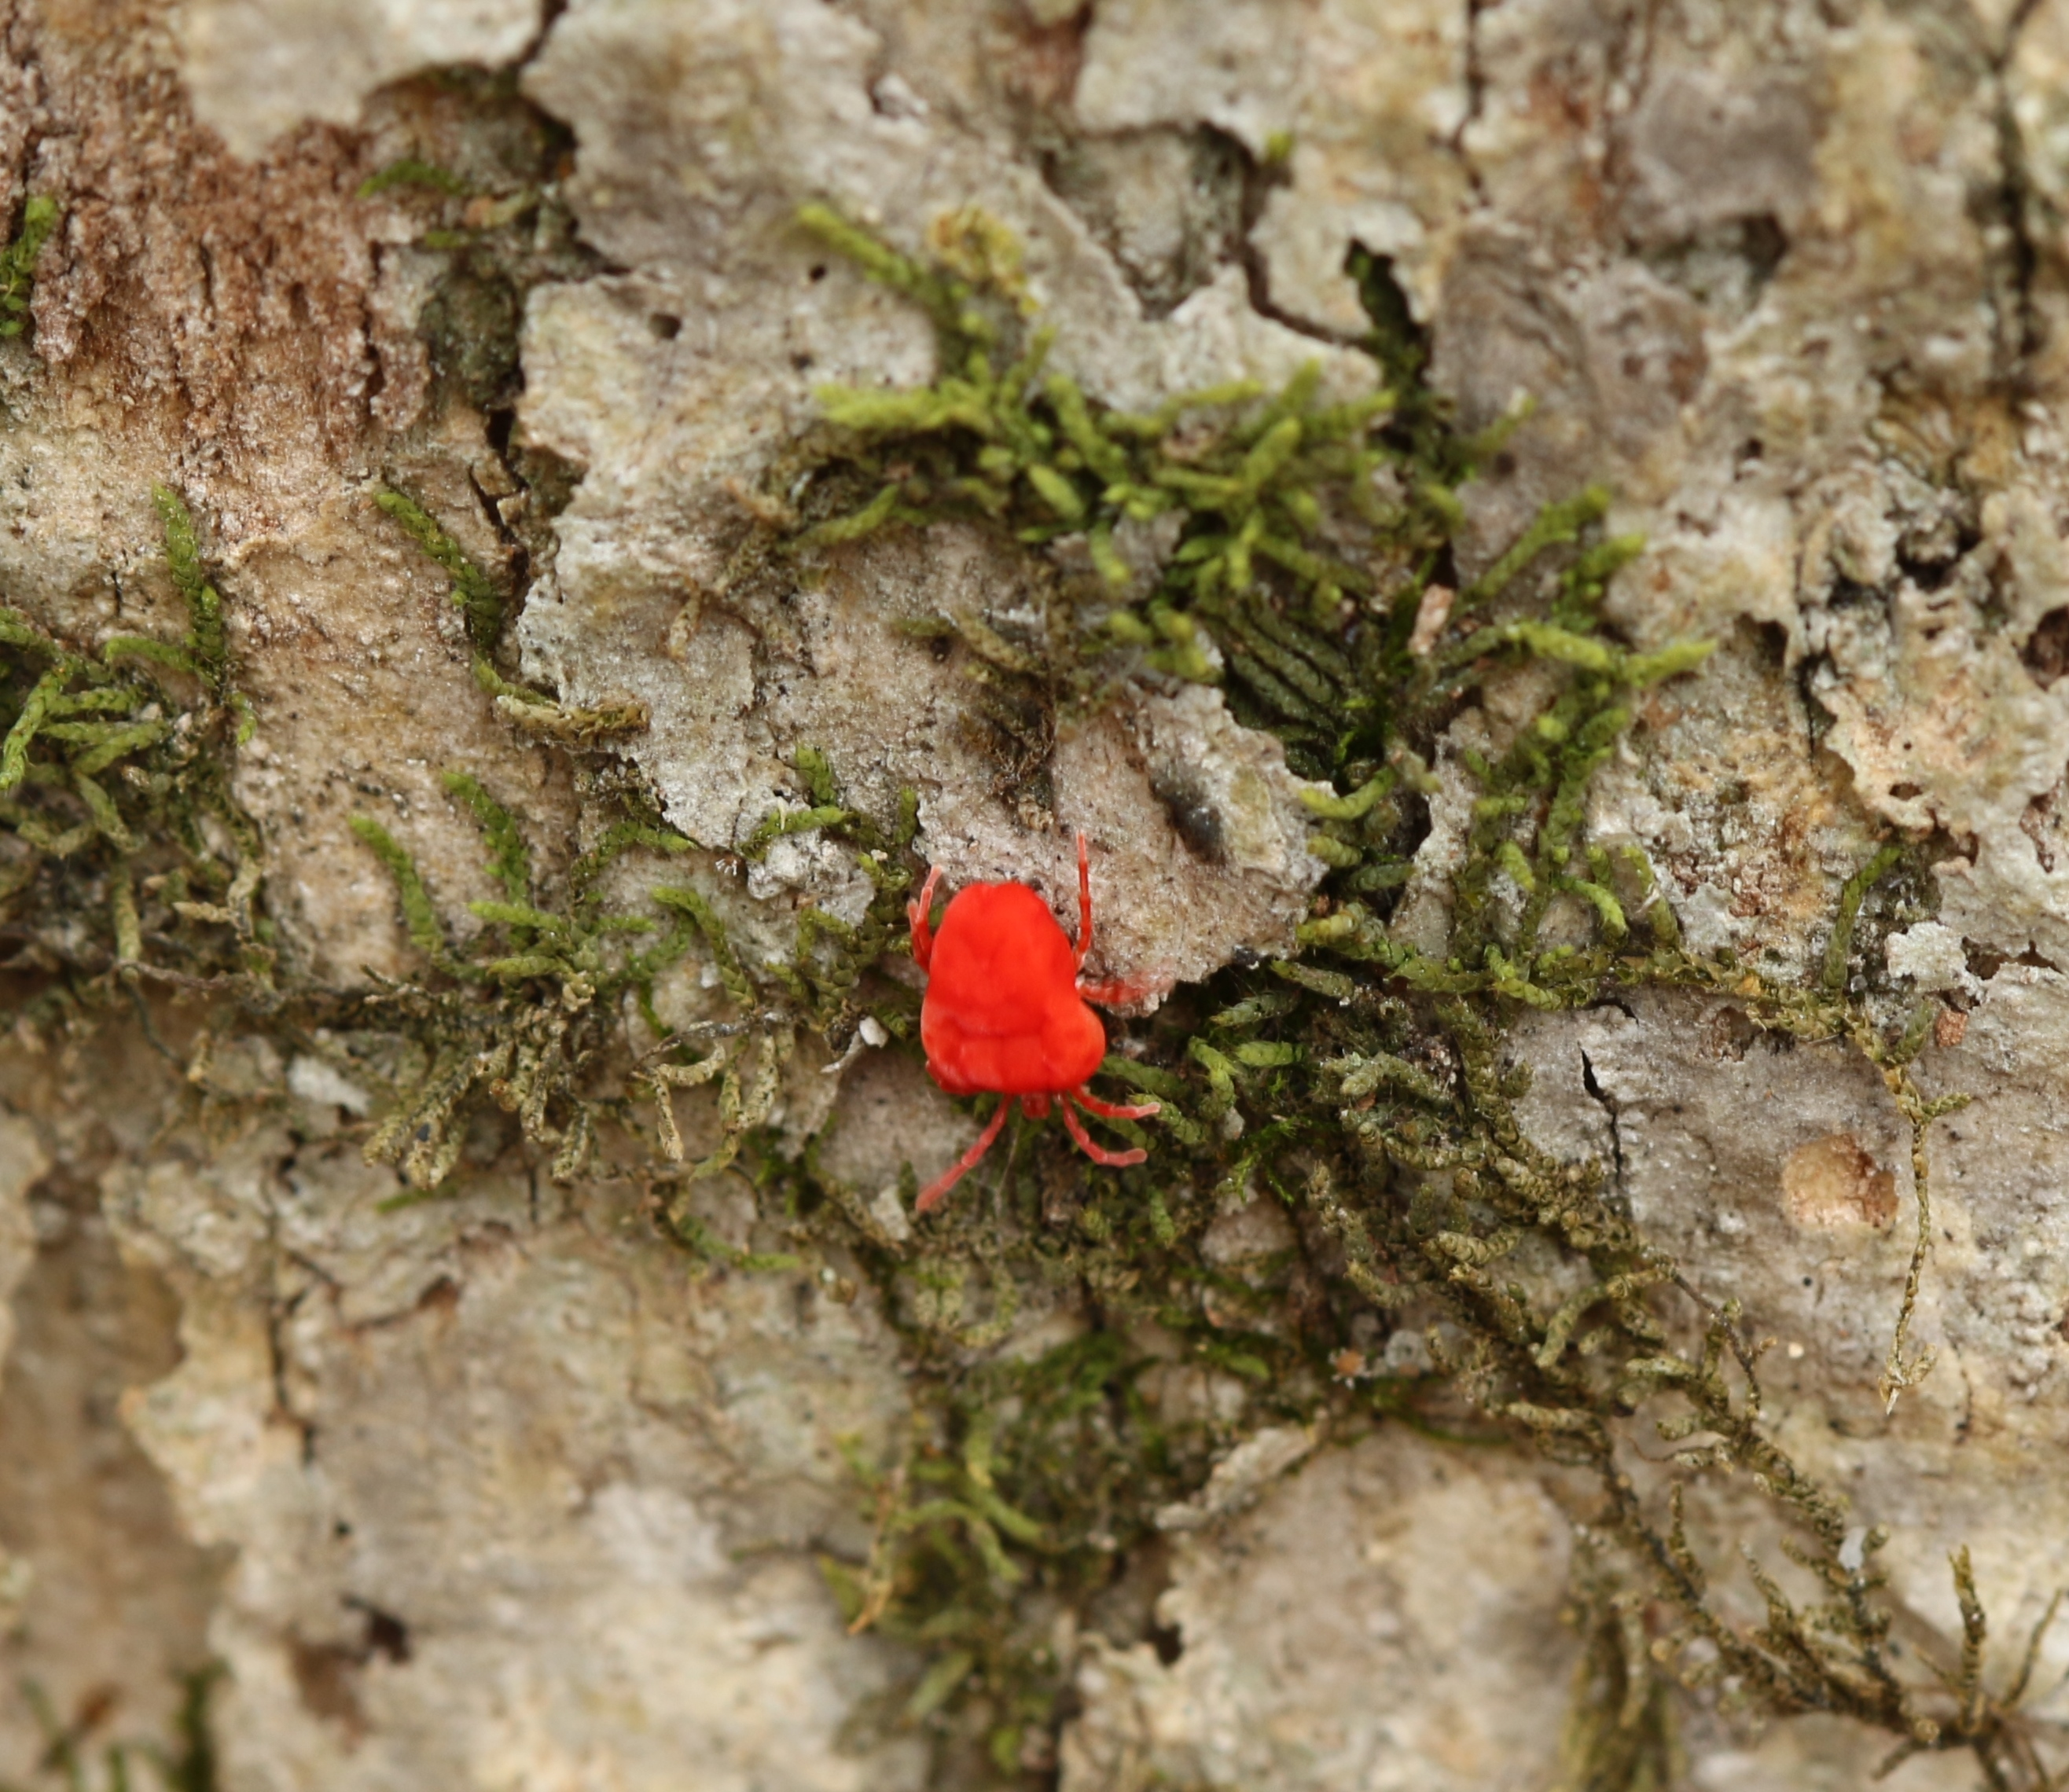 Red velvet mite and moss on tree bark